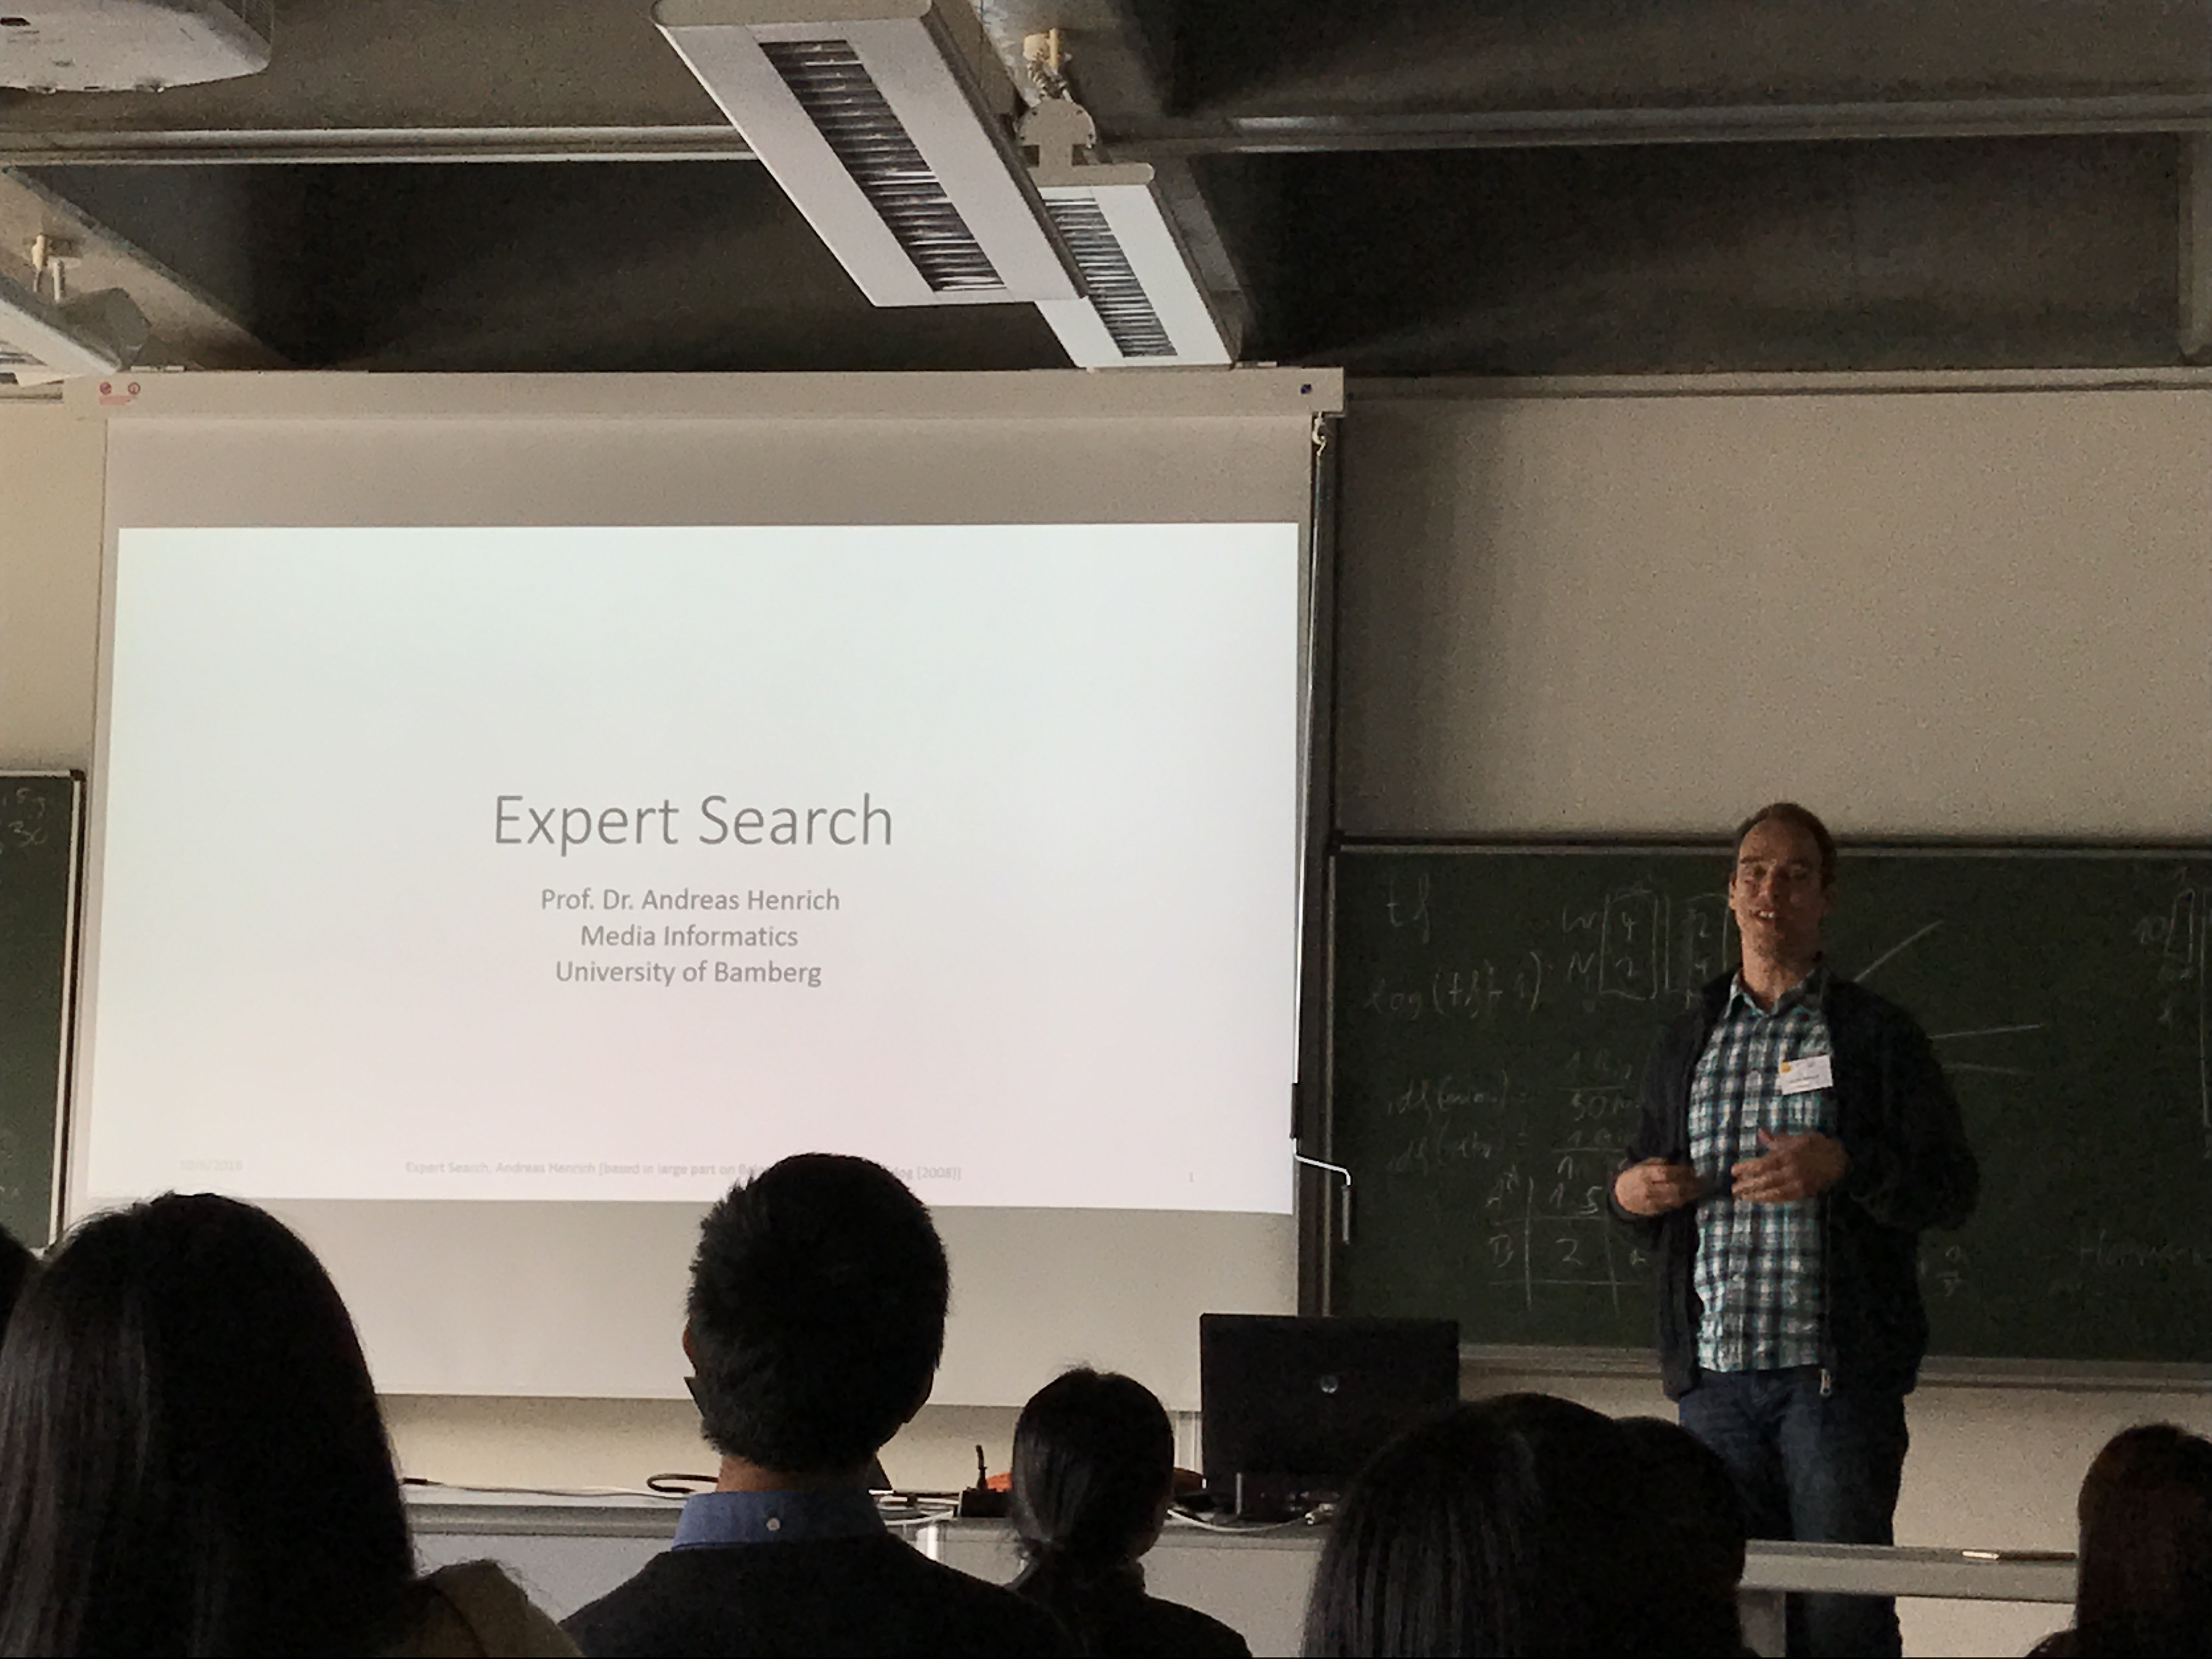 Expert Search by Andreas Henrich, lecture at ASIRF 2016